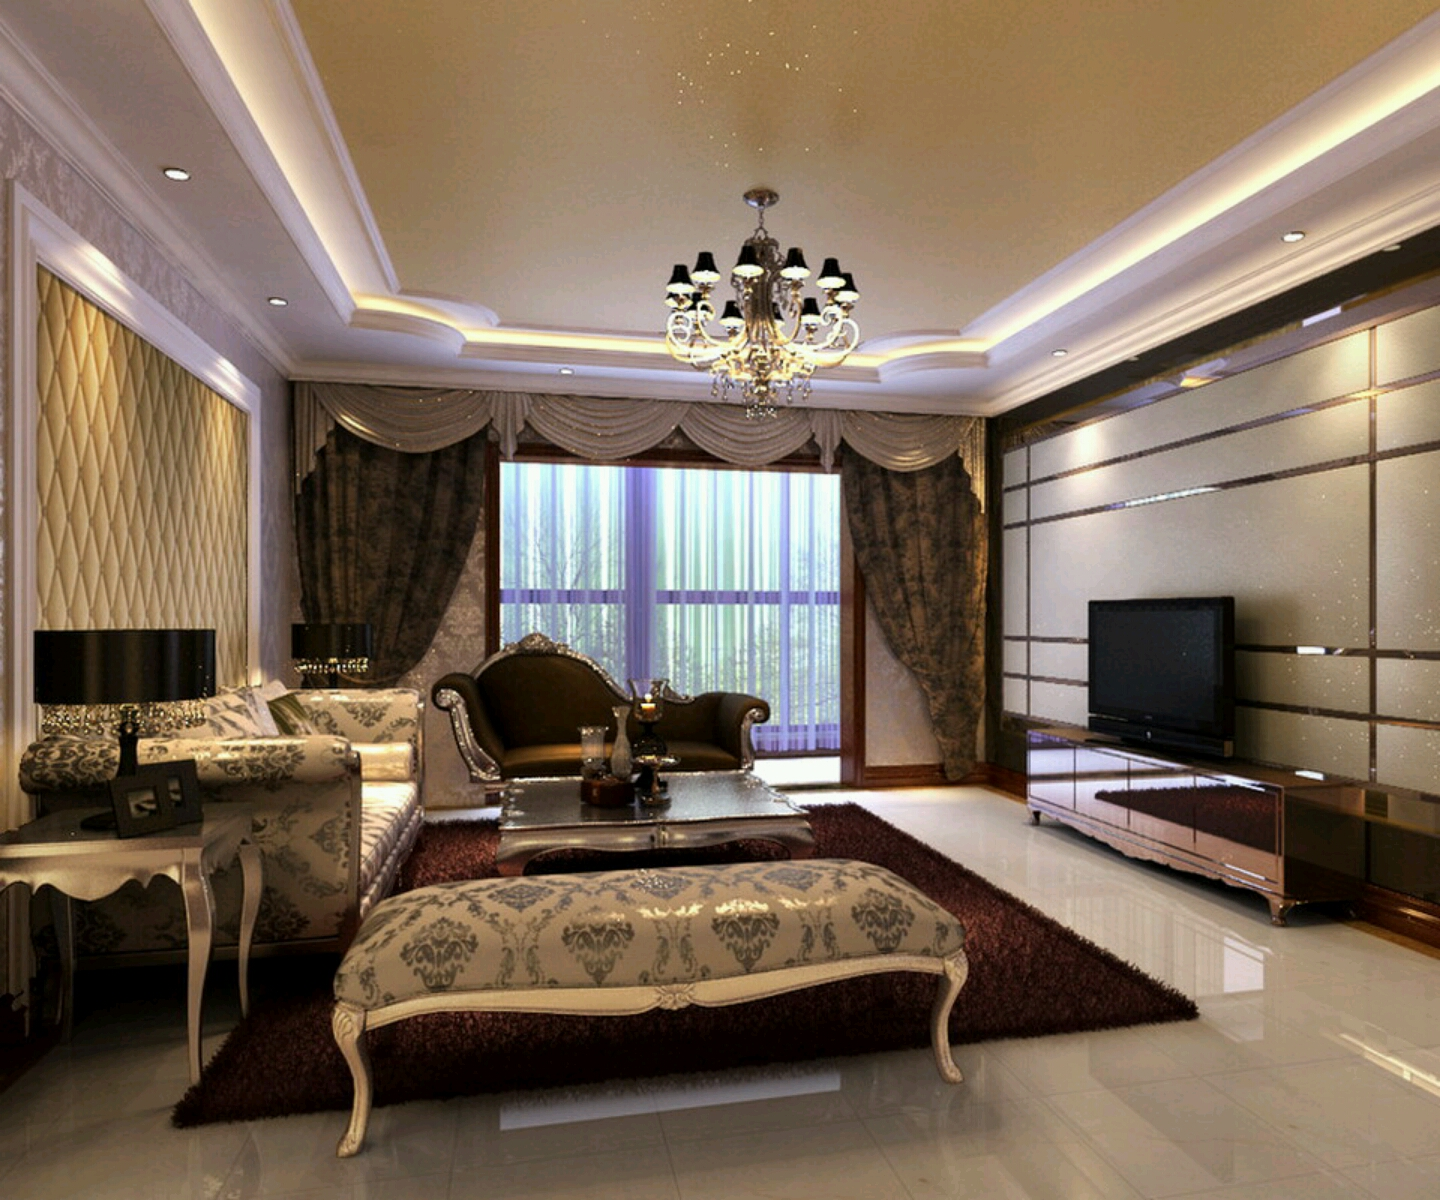 New home designs latest luxury homes interior decoration living room designs ideas - New homes interior design ideas ...